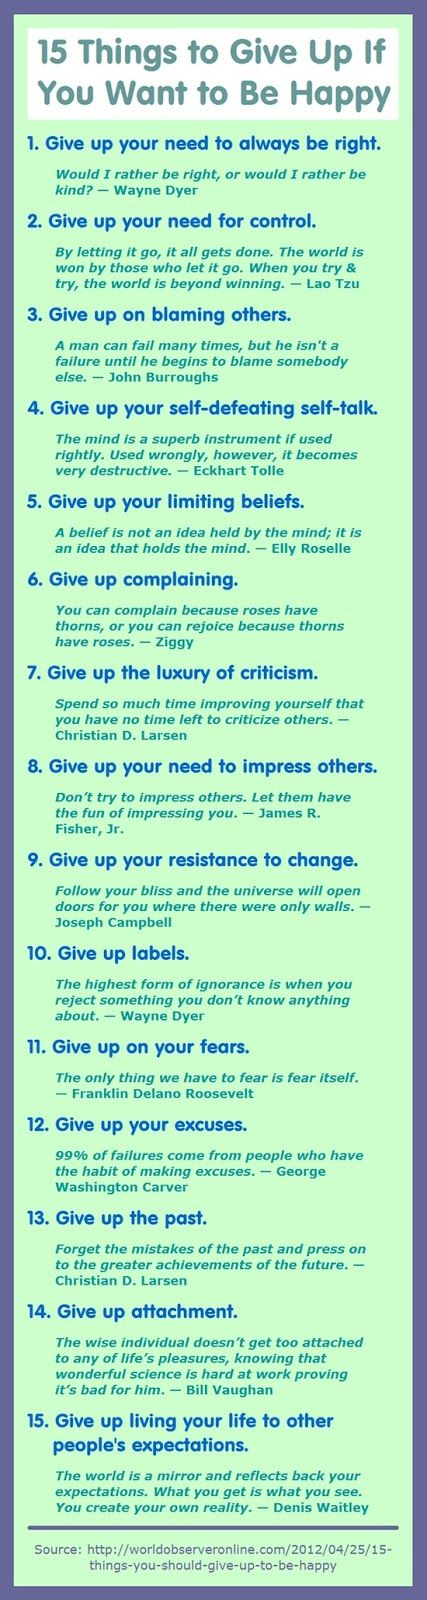 15 things to give up if you want to be happy..